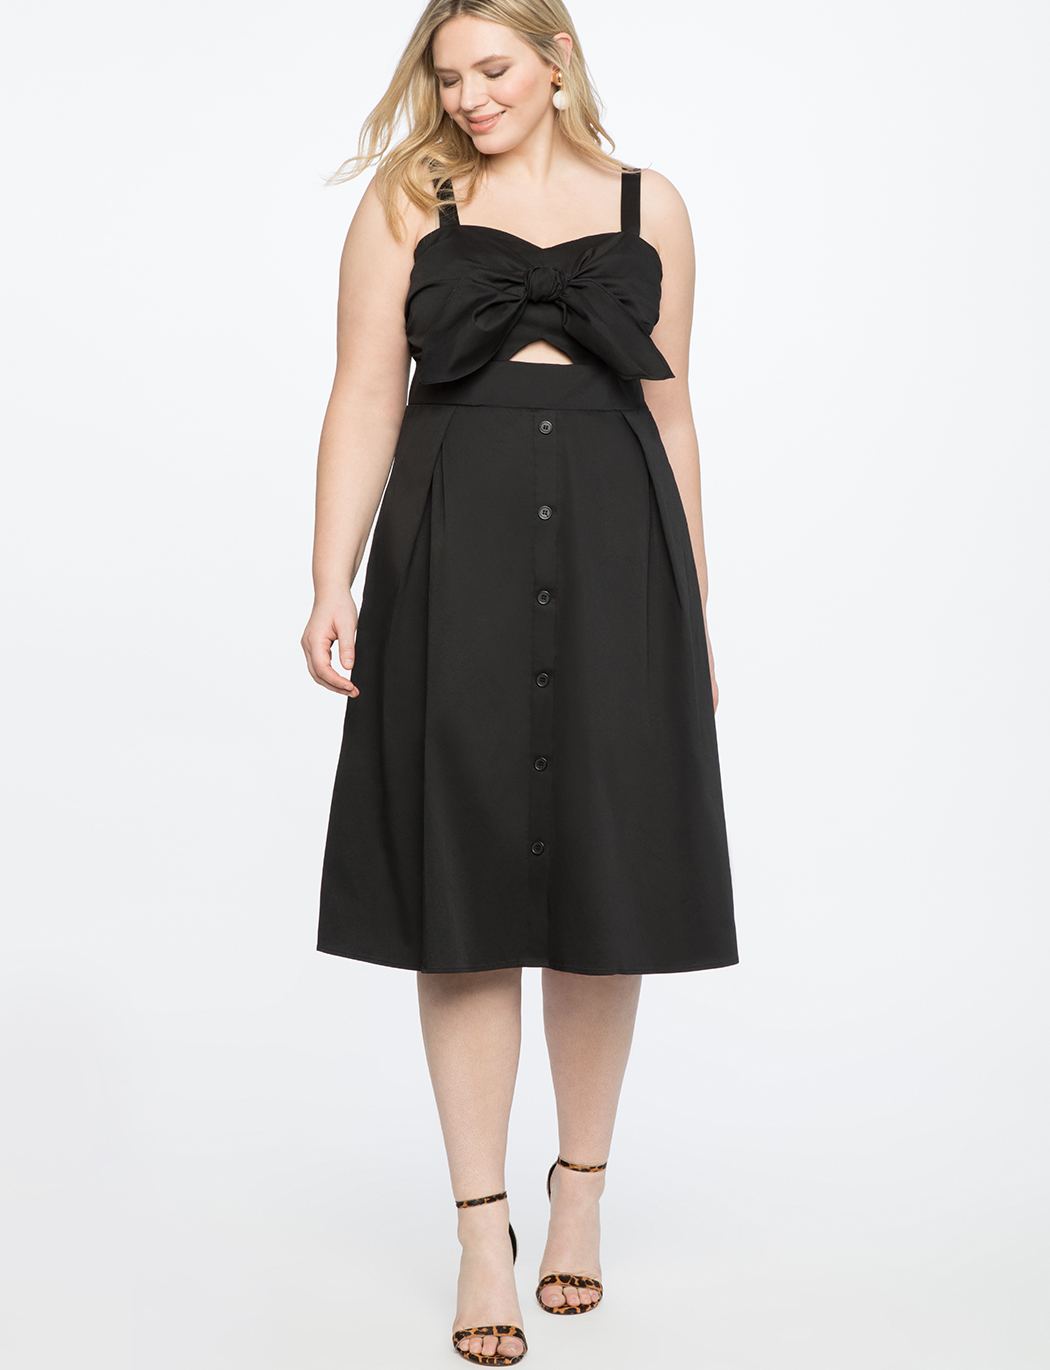 Button Front Bandeau Dress | Women\'s Plus Size Dresses | ELOQUII